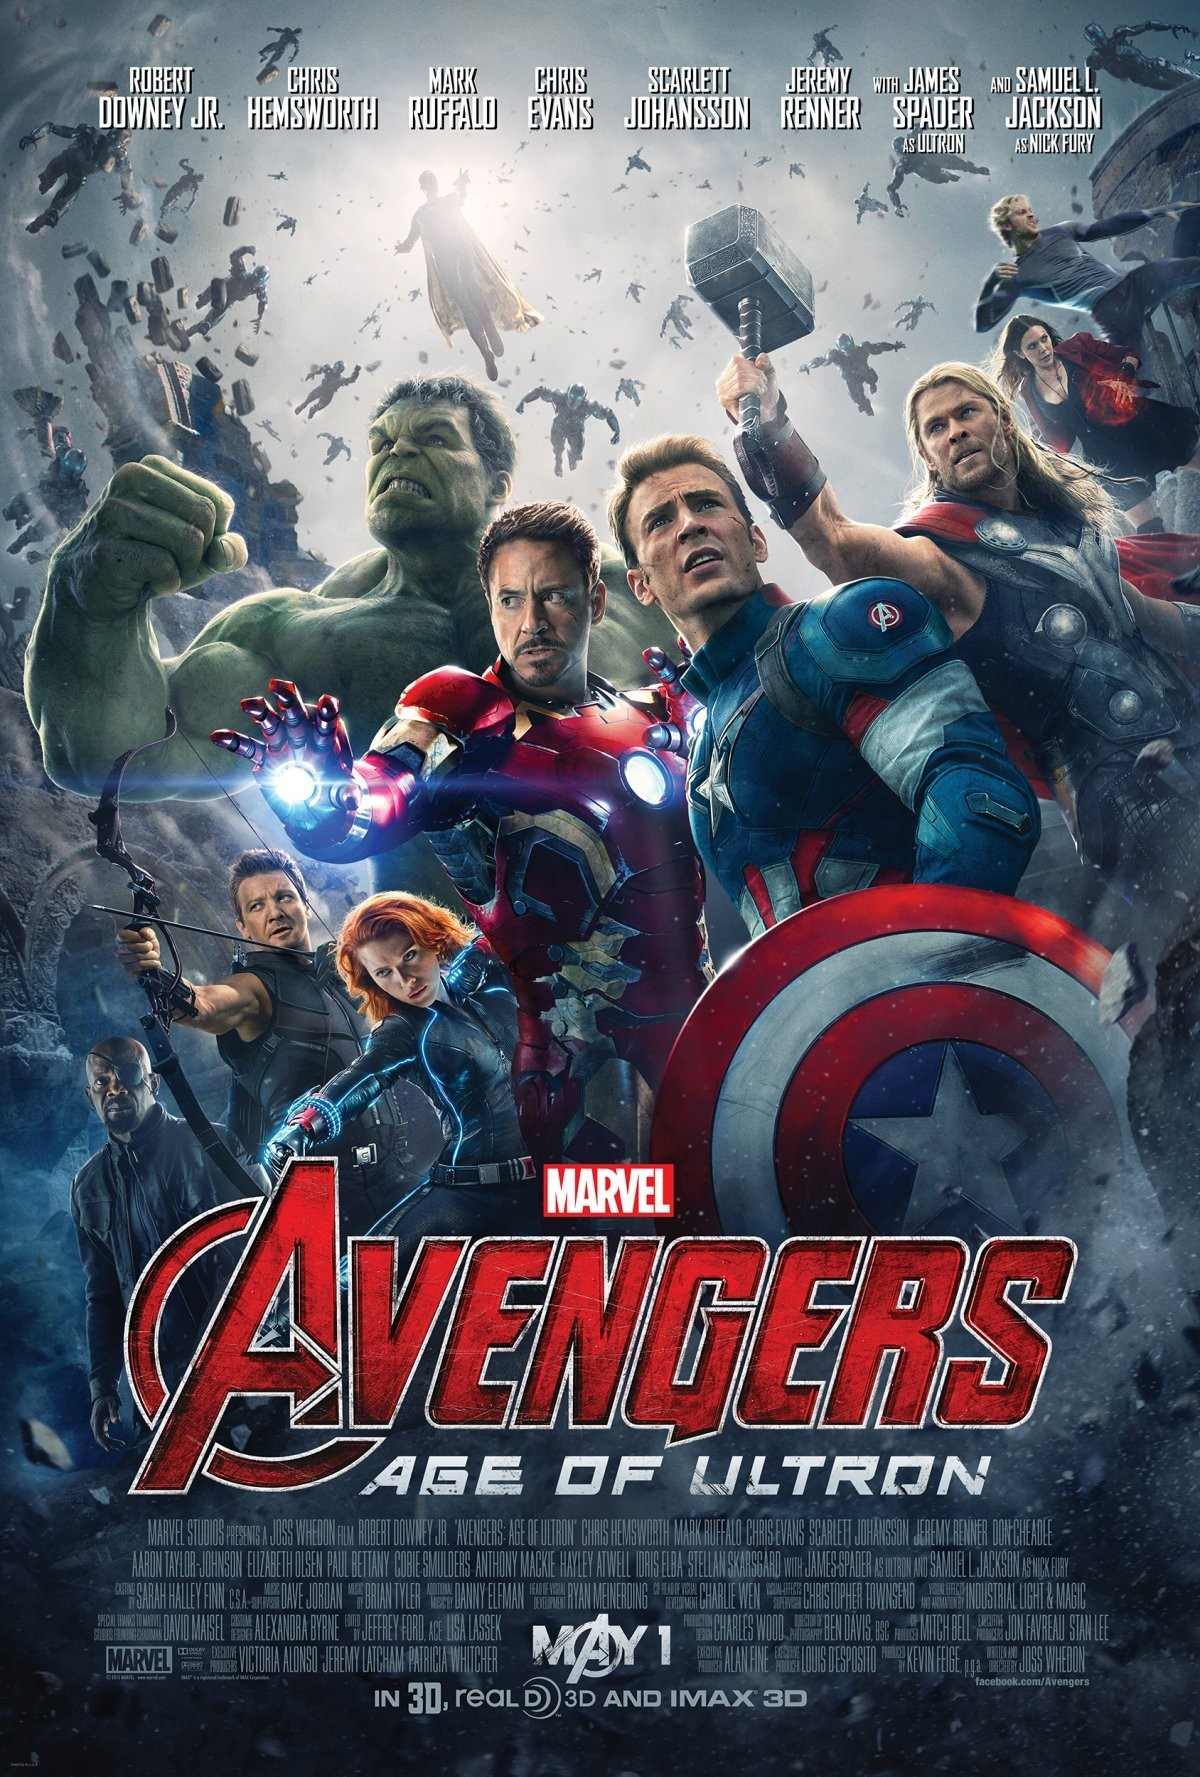 'Avengers: Age of Ultron' Knows You and Gives You What You Want